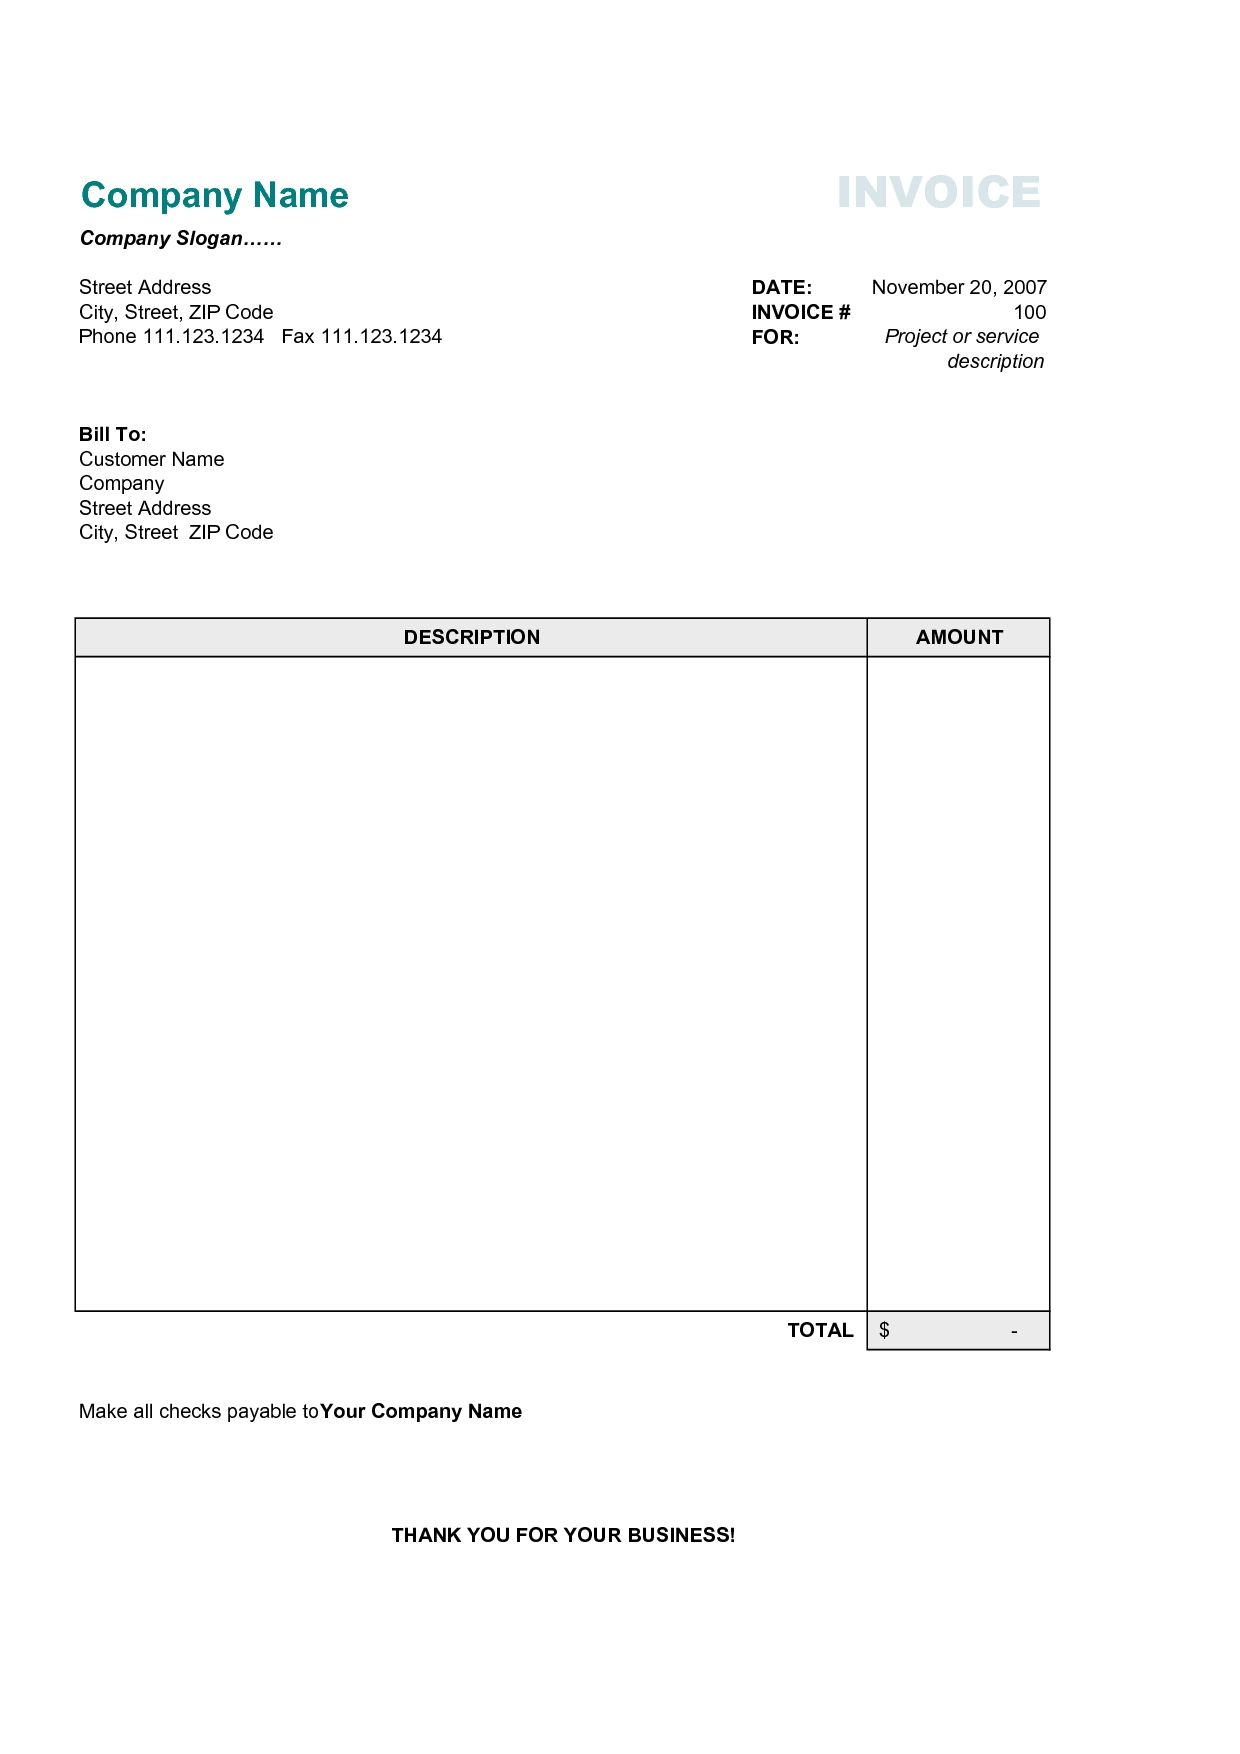 Simple Invoice Template Free Invoice Example